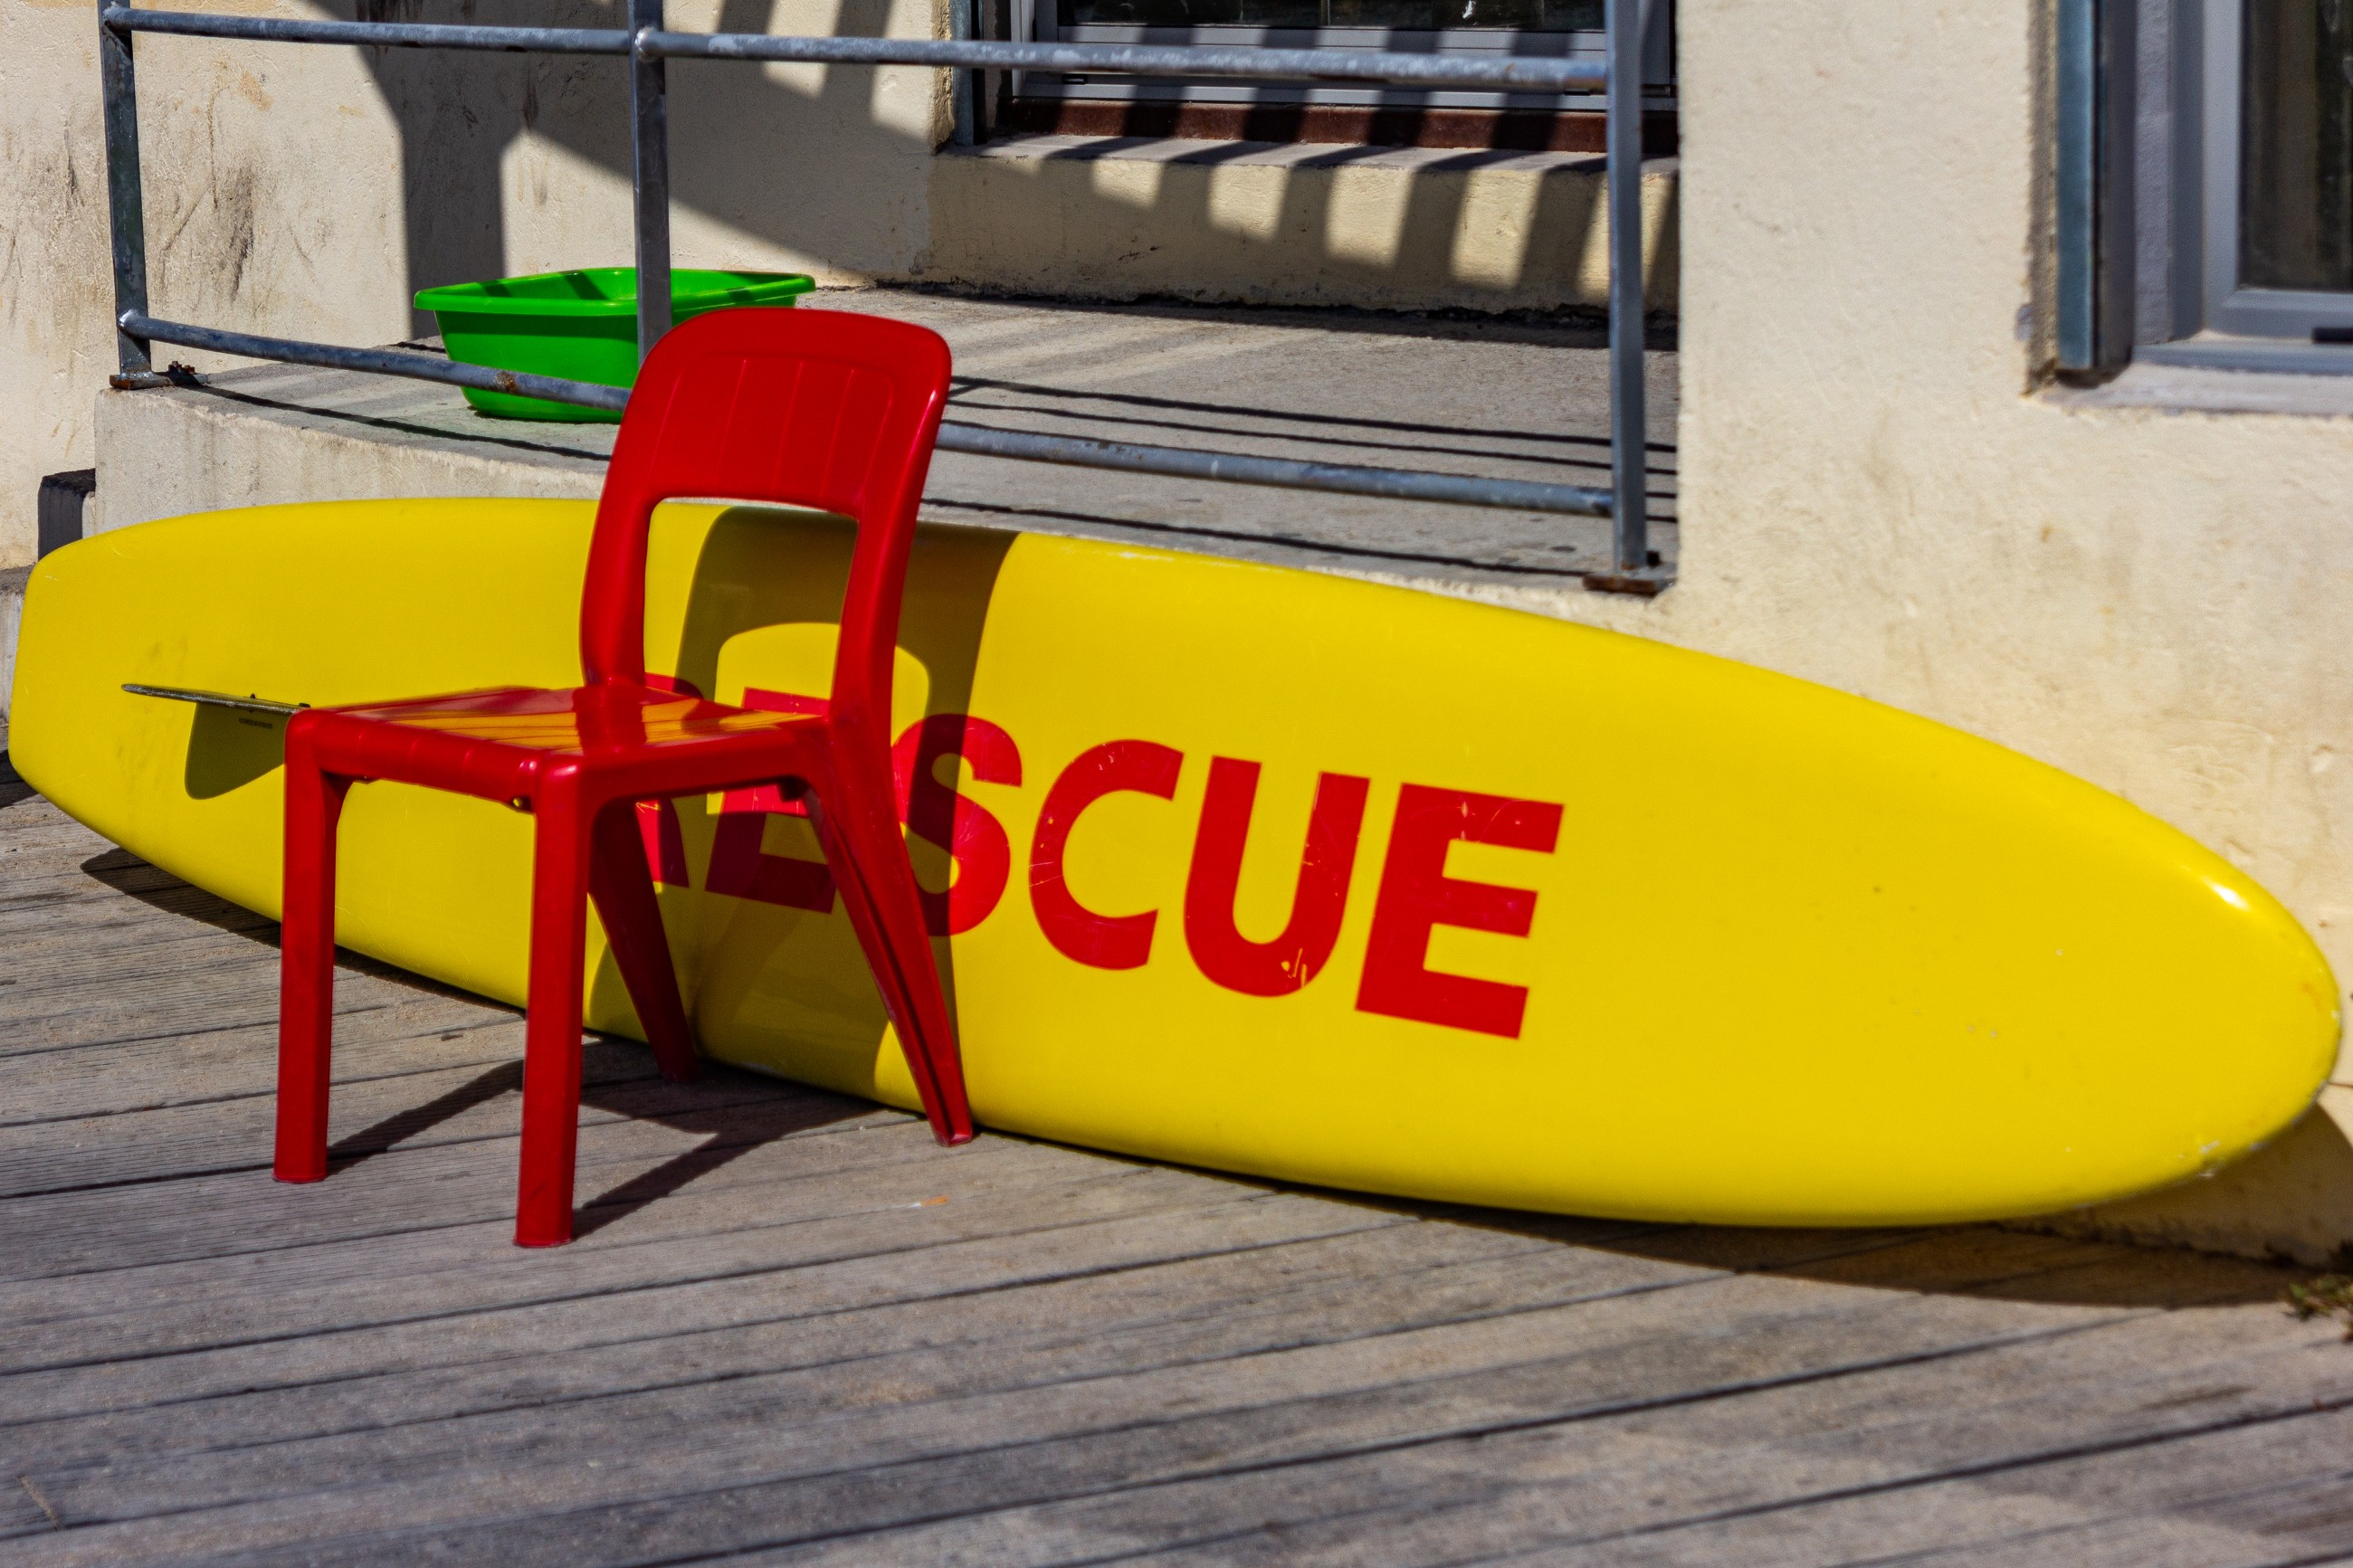 Want a Rescue Checklist to Help You Write and Analyze Your Own Headlines?